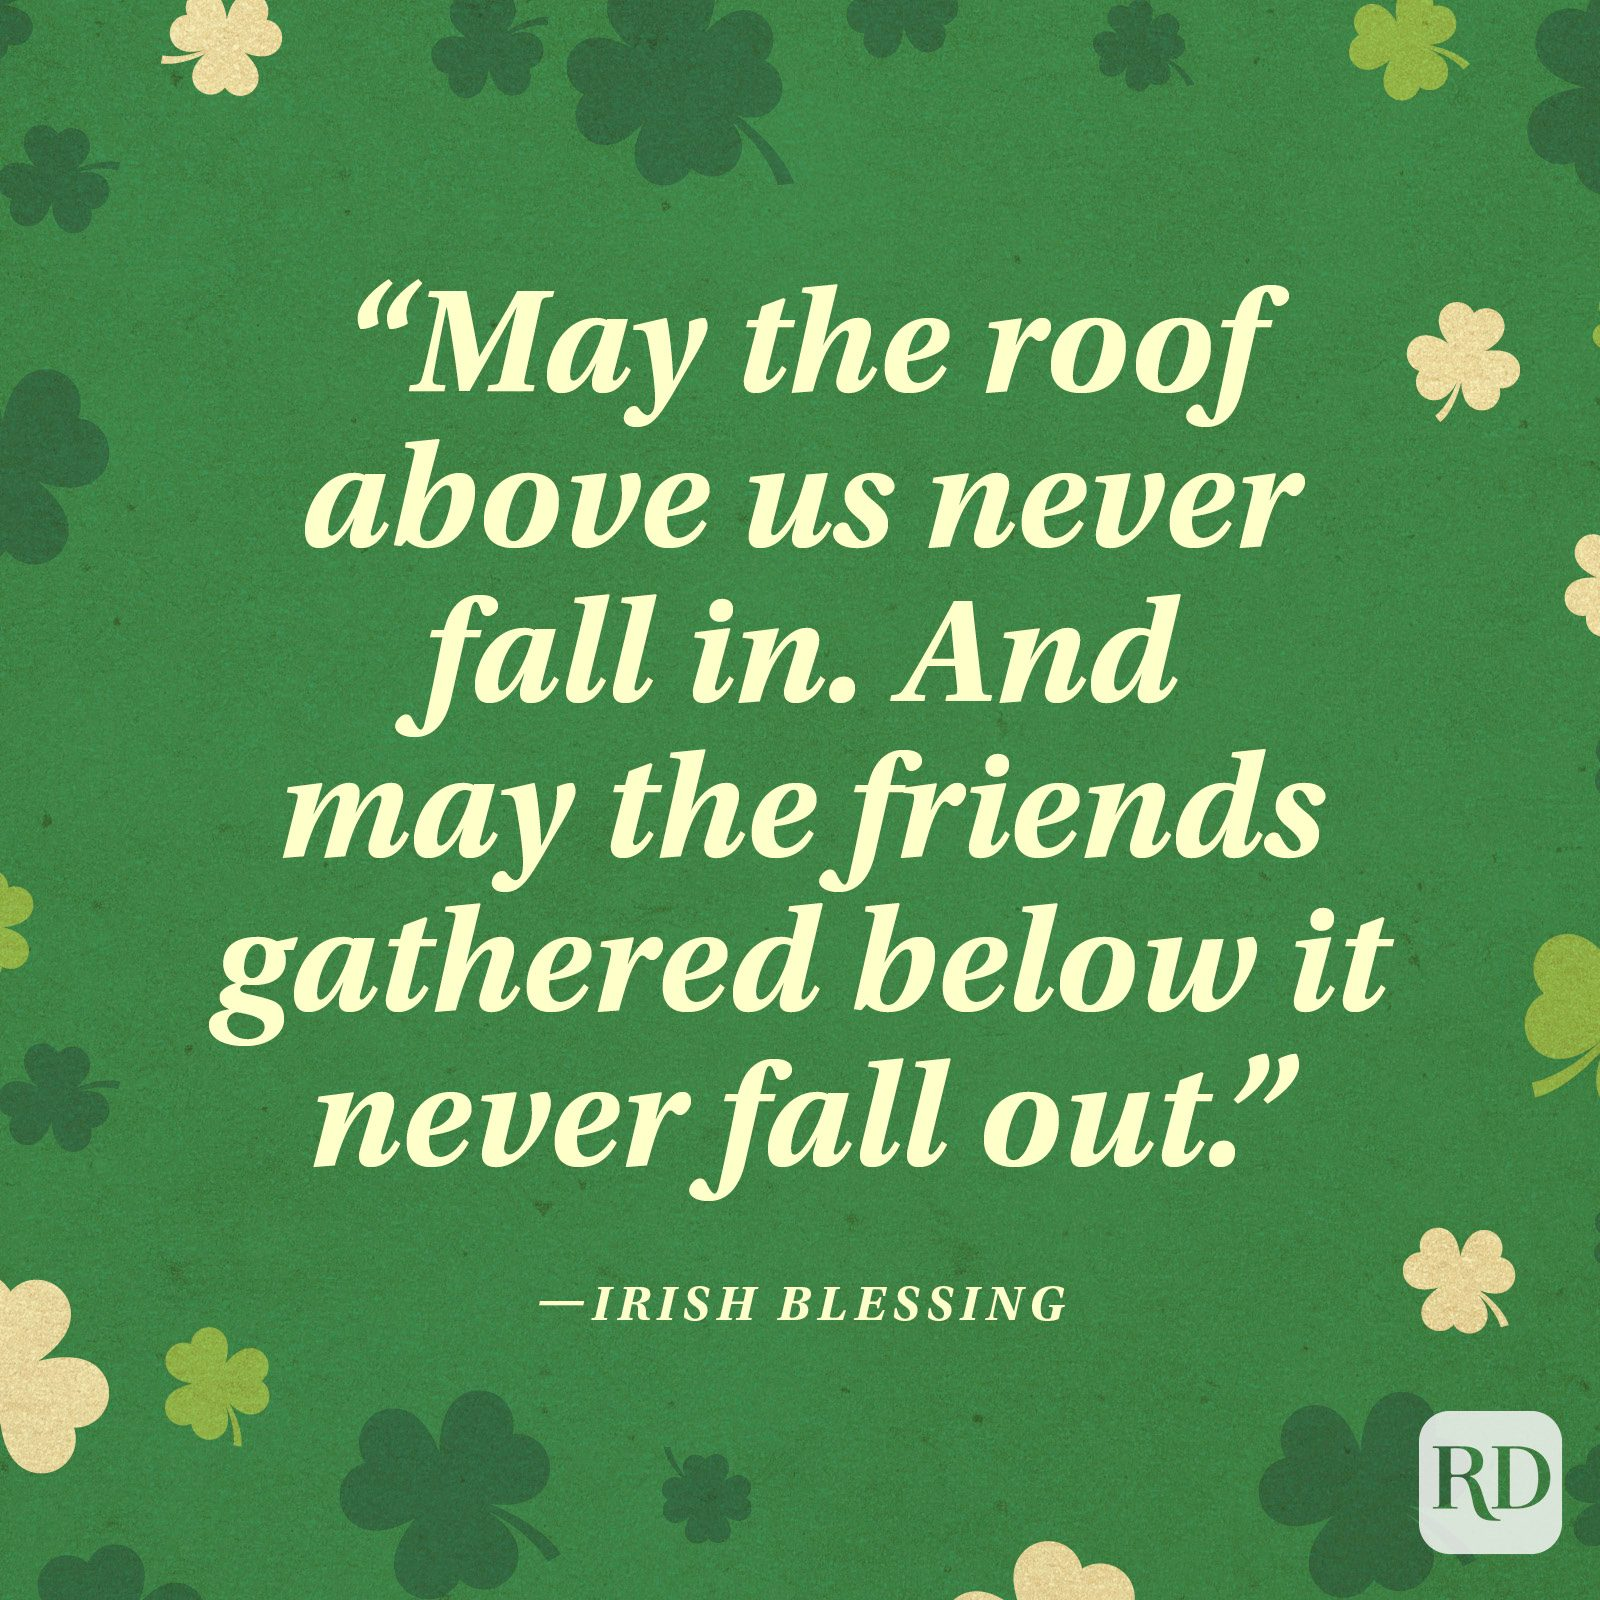 """May the roof above us never fall in. And may the friends gathered below it never fall out."" —Irish blessing"